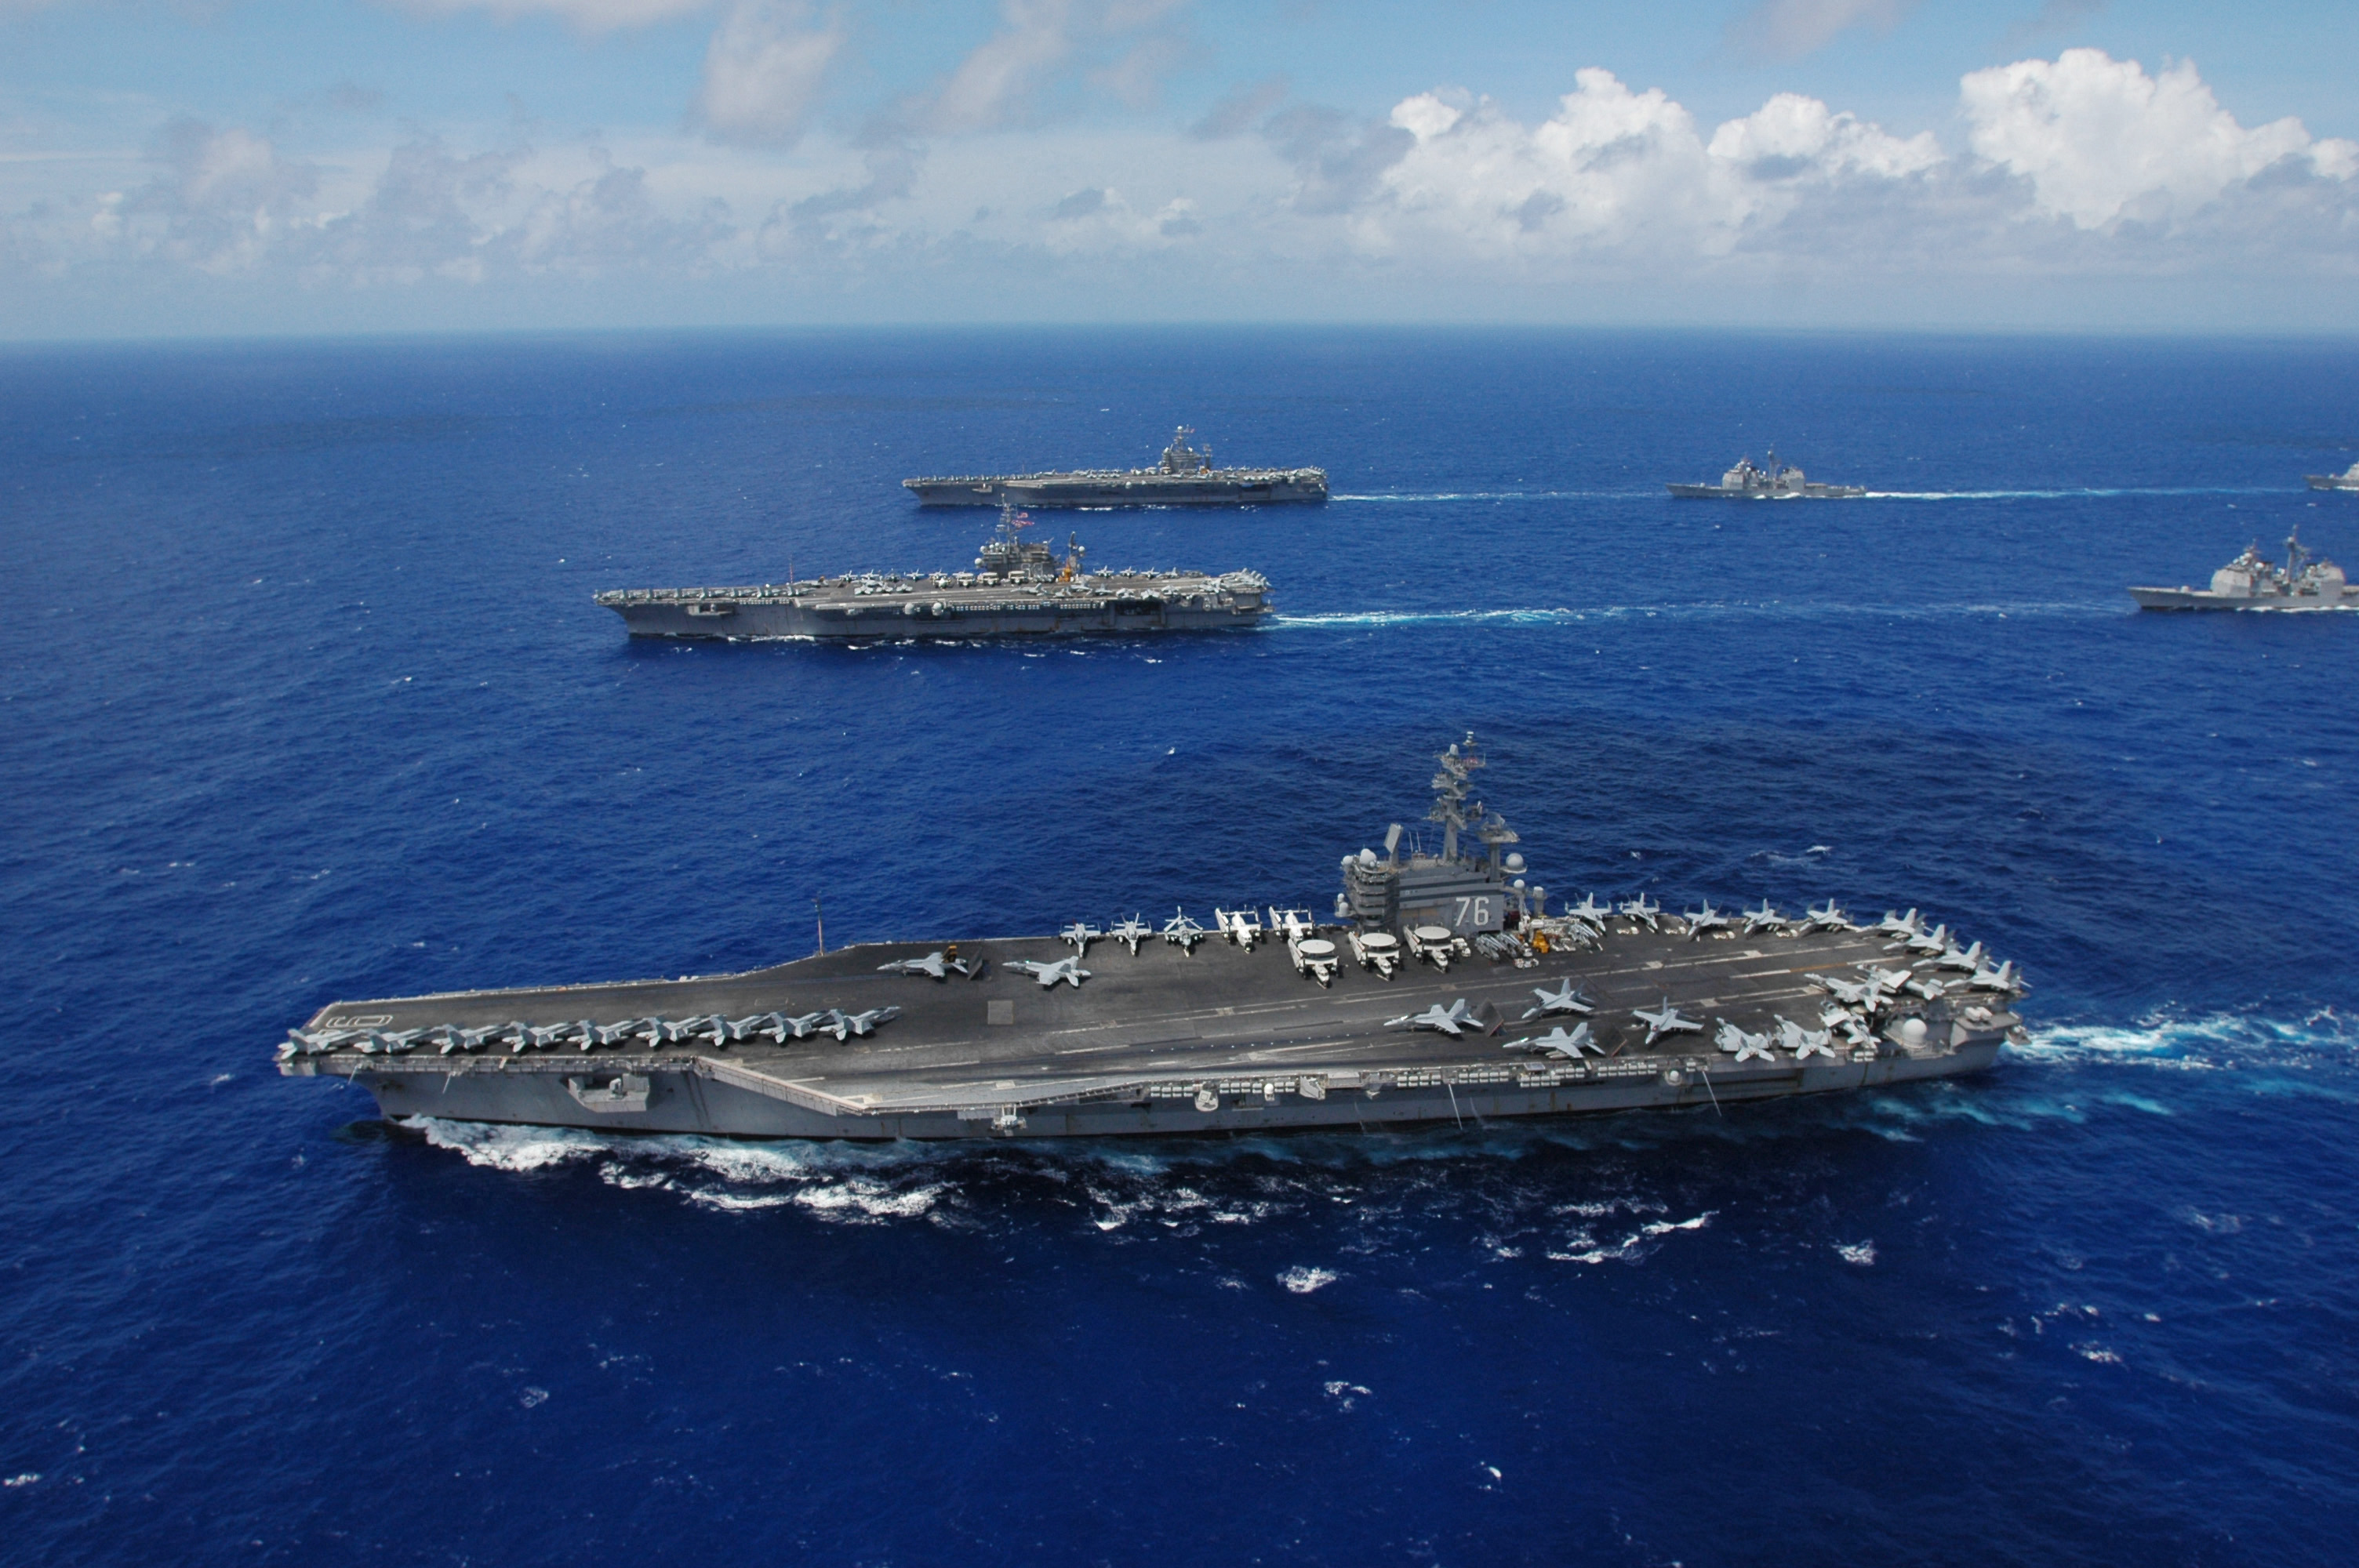 USS Nimitz class aircraft carrier USS Ronald Reagan USS Kitty Hawk USS Abraham Lincoln